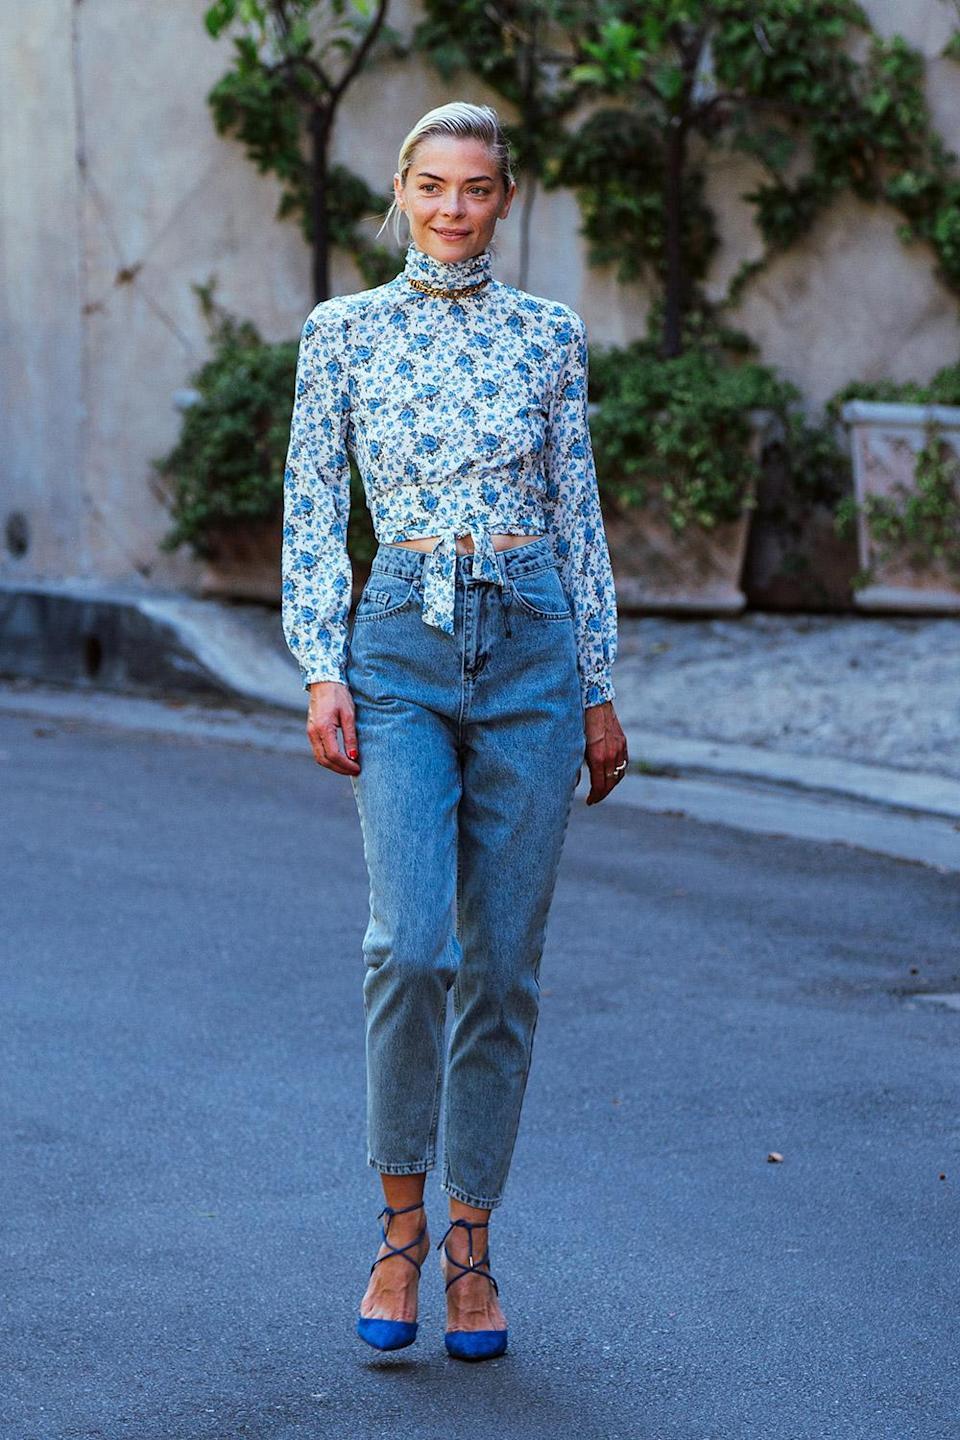 <p>Jaime King stepped out from her Los Angeles home Thursday in a chic boohoo floral backless top and high-waisted jeans.</p>